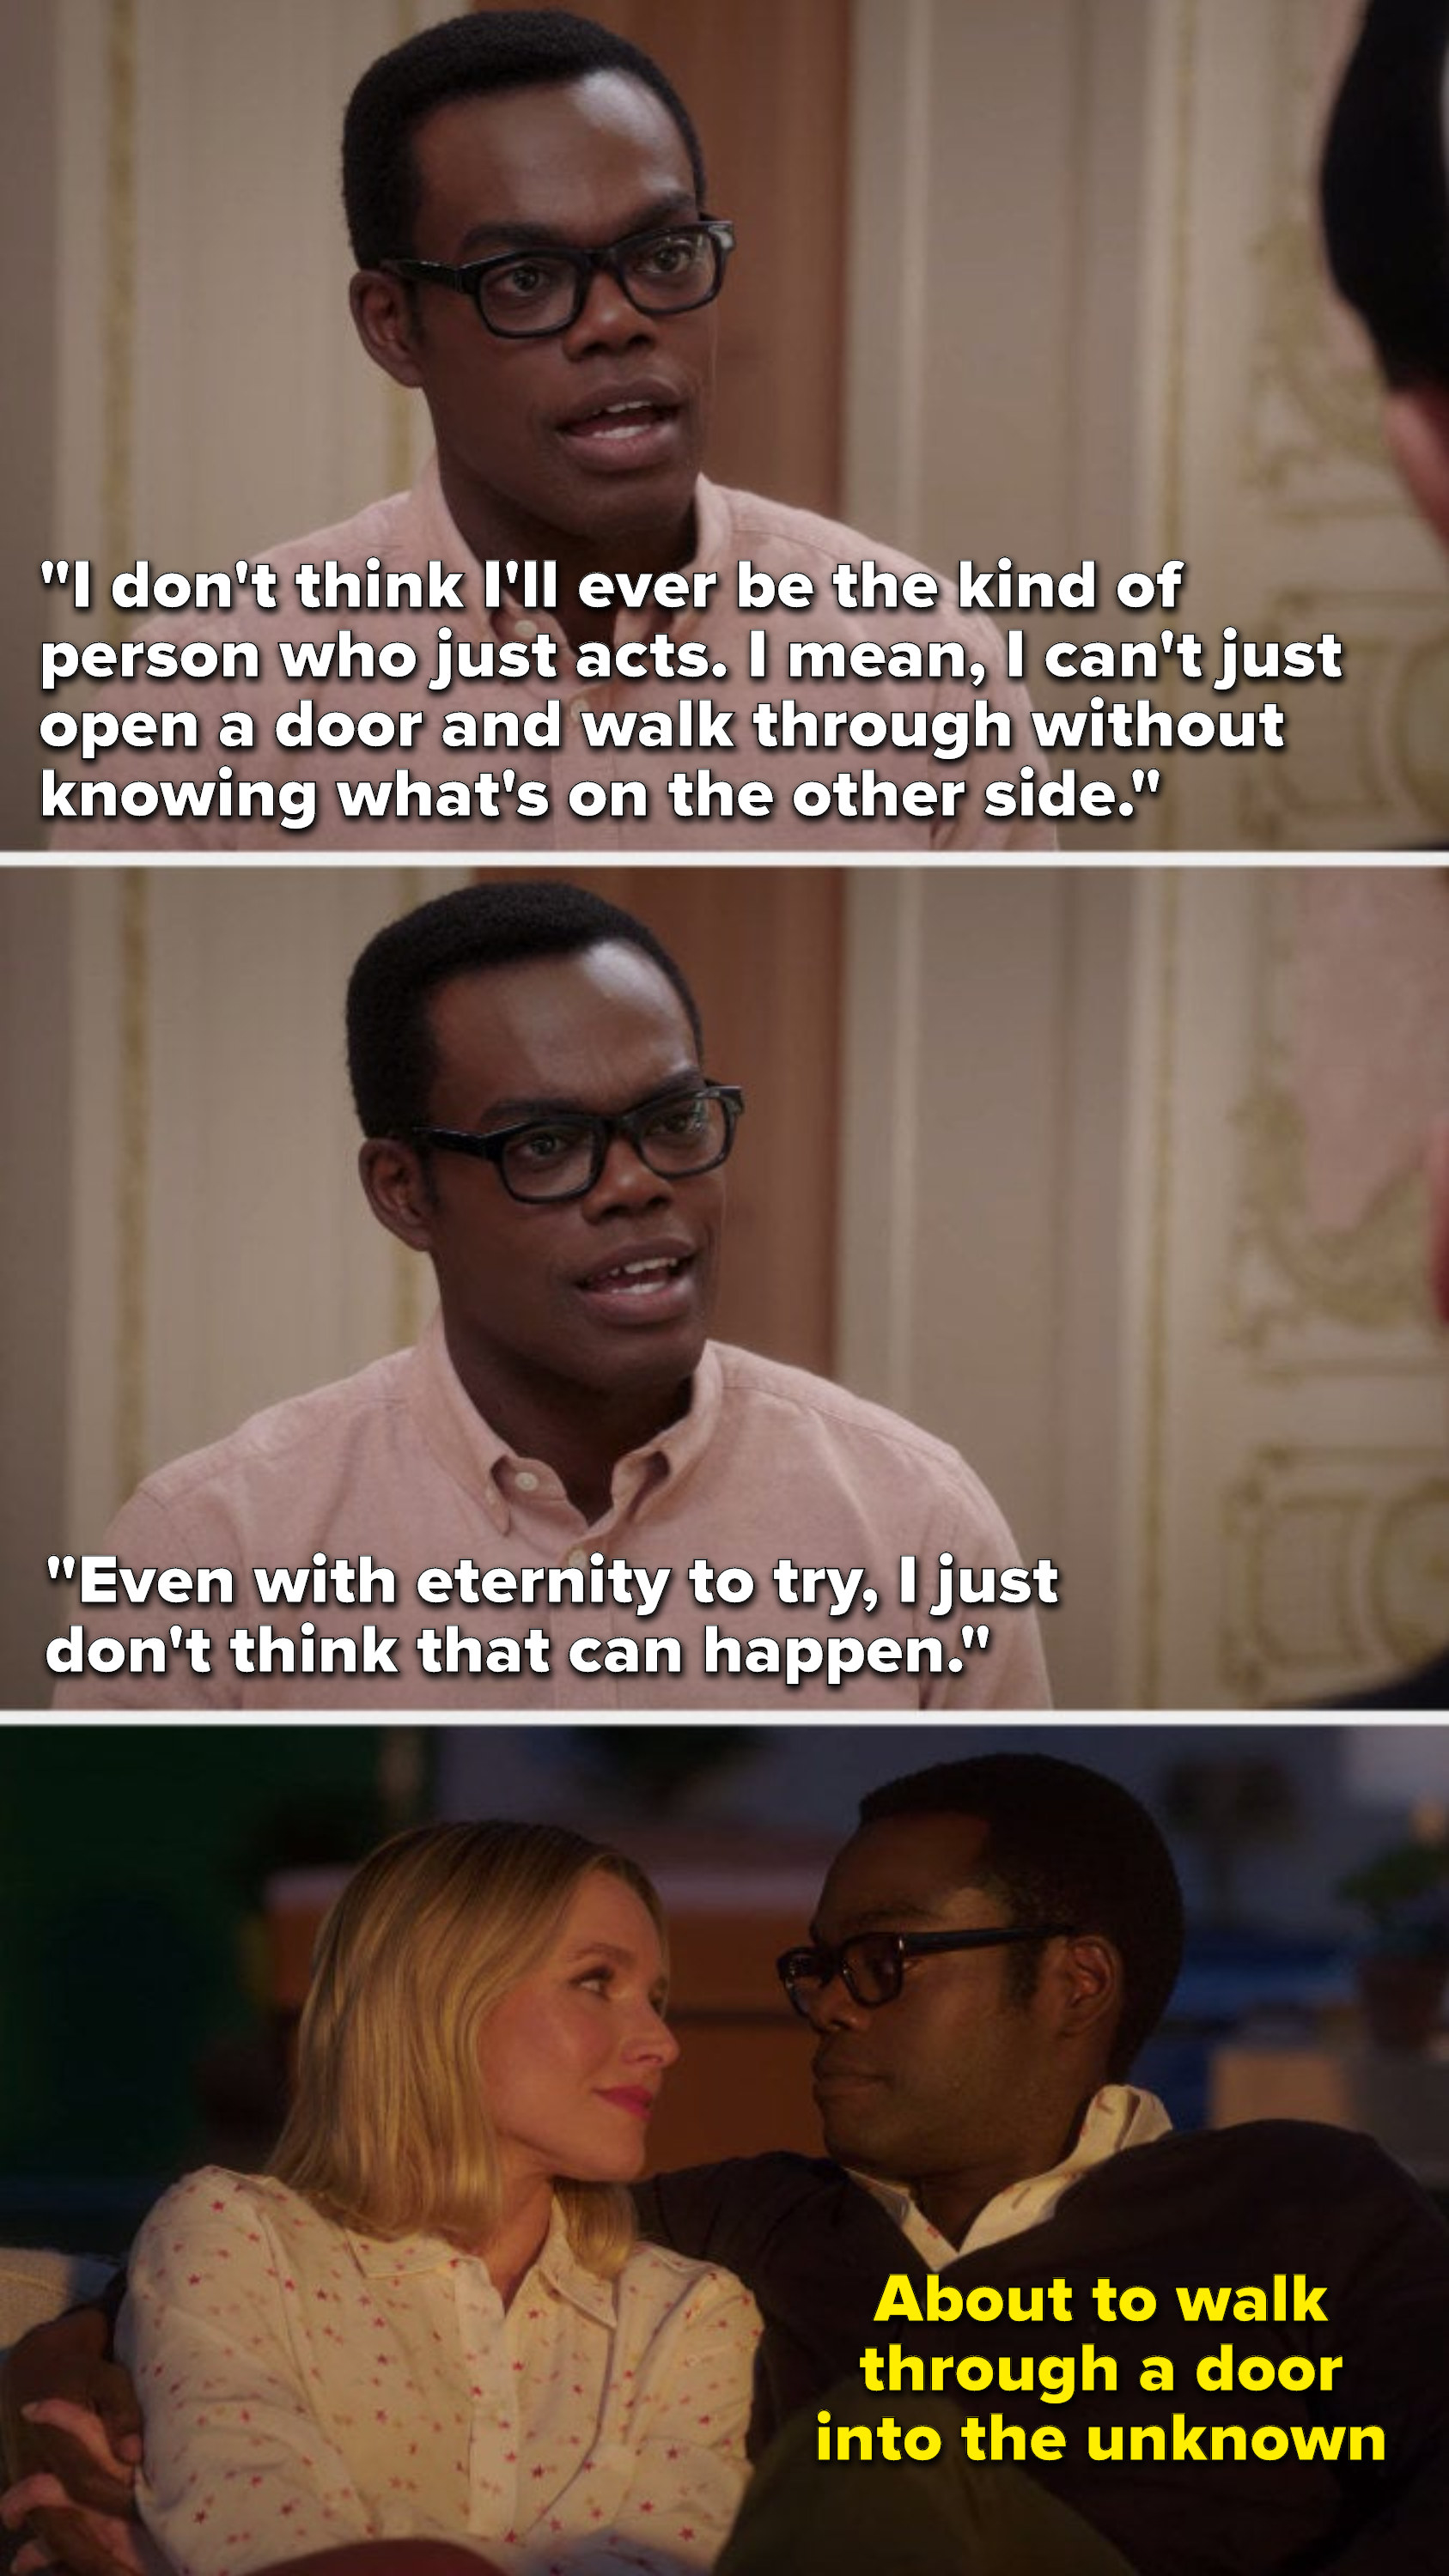 """Chidi says, """"I don't think I'll ever be the kind of person who just acts, I mean, I can't just open a door and walk through without knowing what's on the other side, even with eternity to try, I just don't think that can happen"""""""